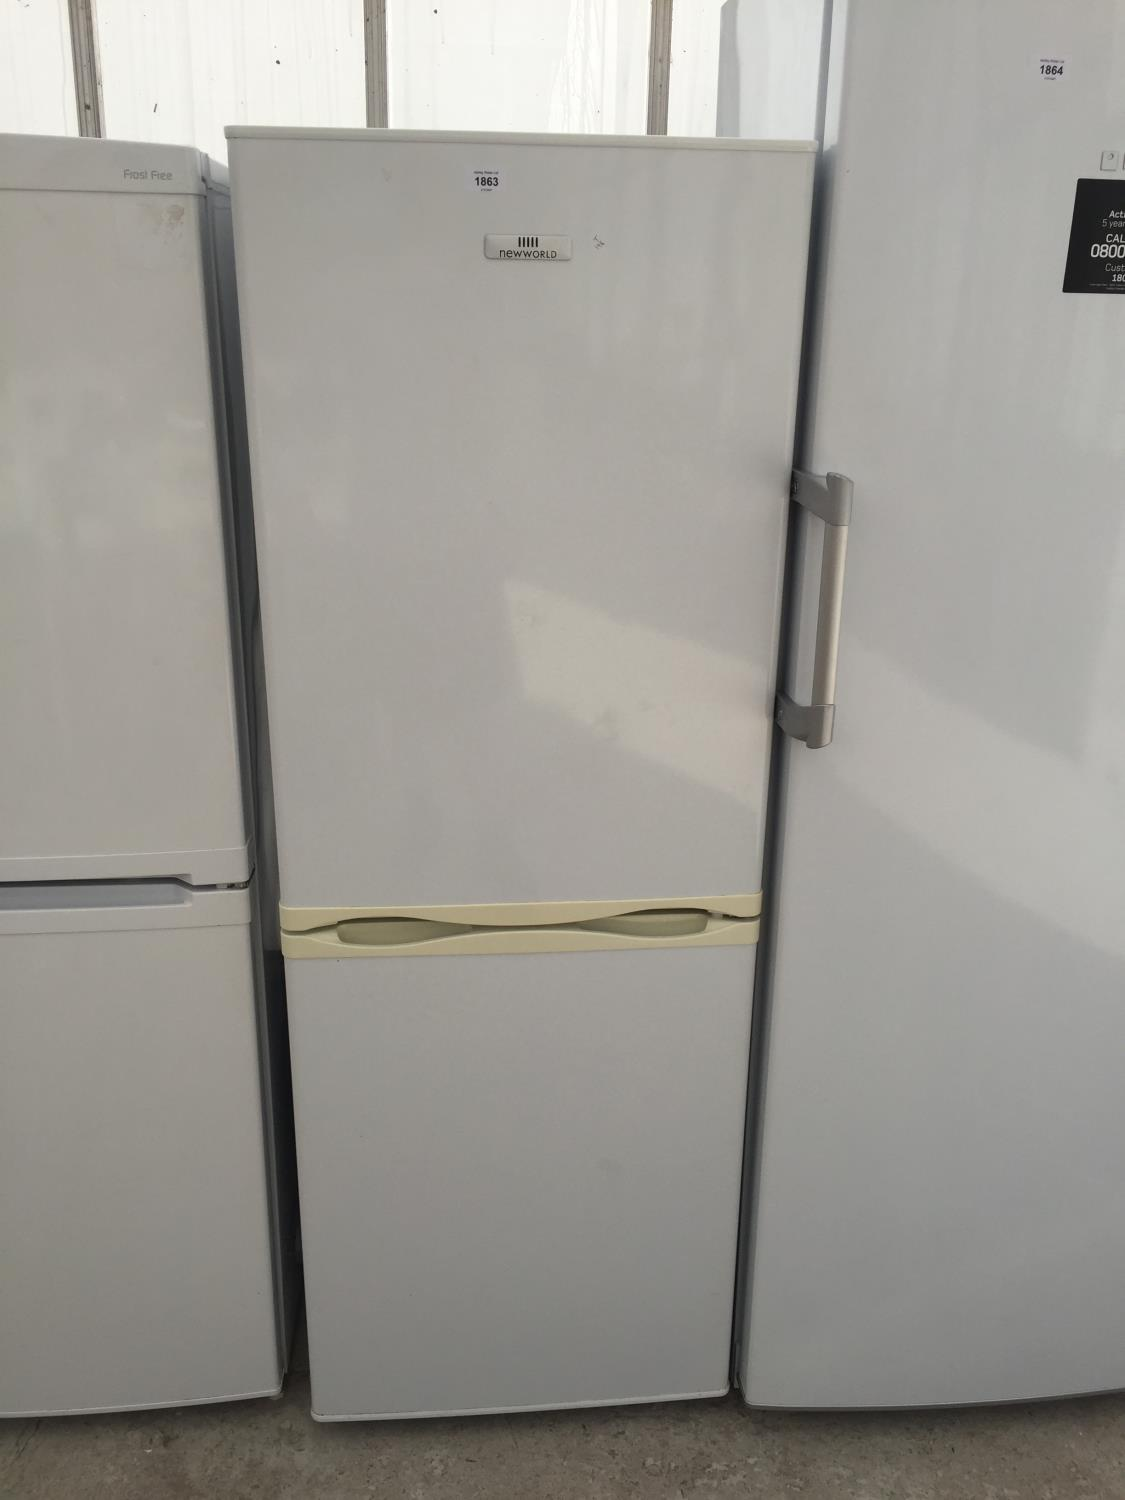 A WHITE NEWWORLD UPRIGHT FRIDGE FREEZER BELIEVED IN WORKING ORDER BUT NO WARRANTY - Image 2 of 4